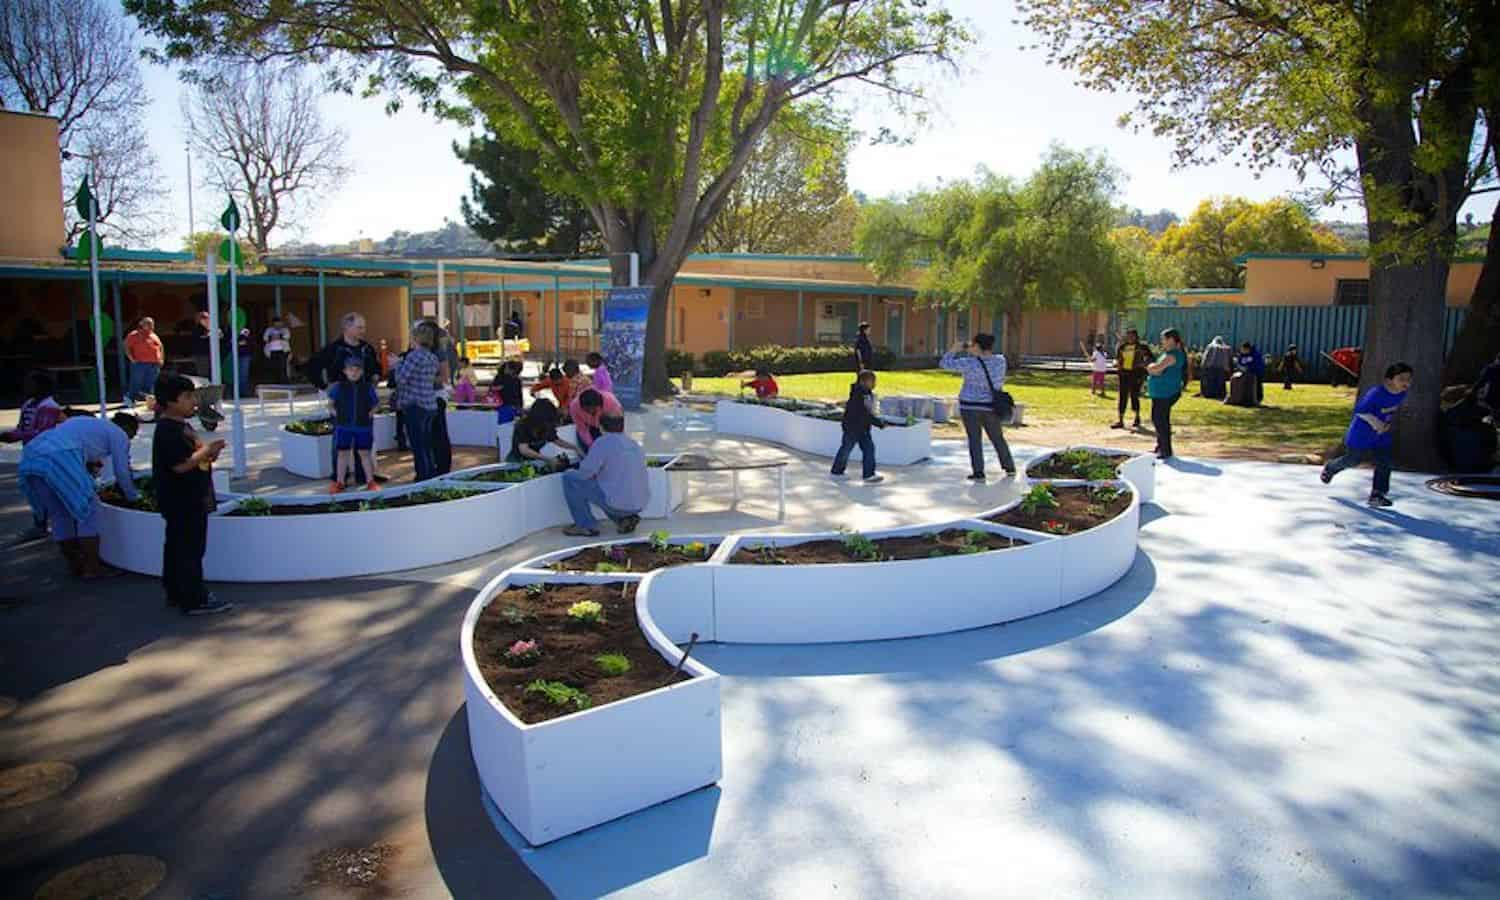 Kimbal Musk is launching his new, national nonprofit, Big Green, and building 100 outdoor Learning Garden classrooms across Detroit.